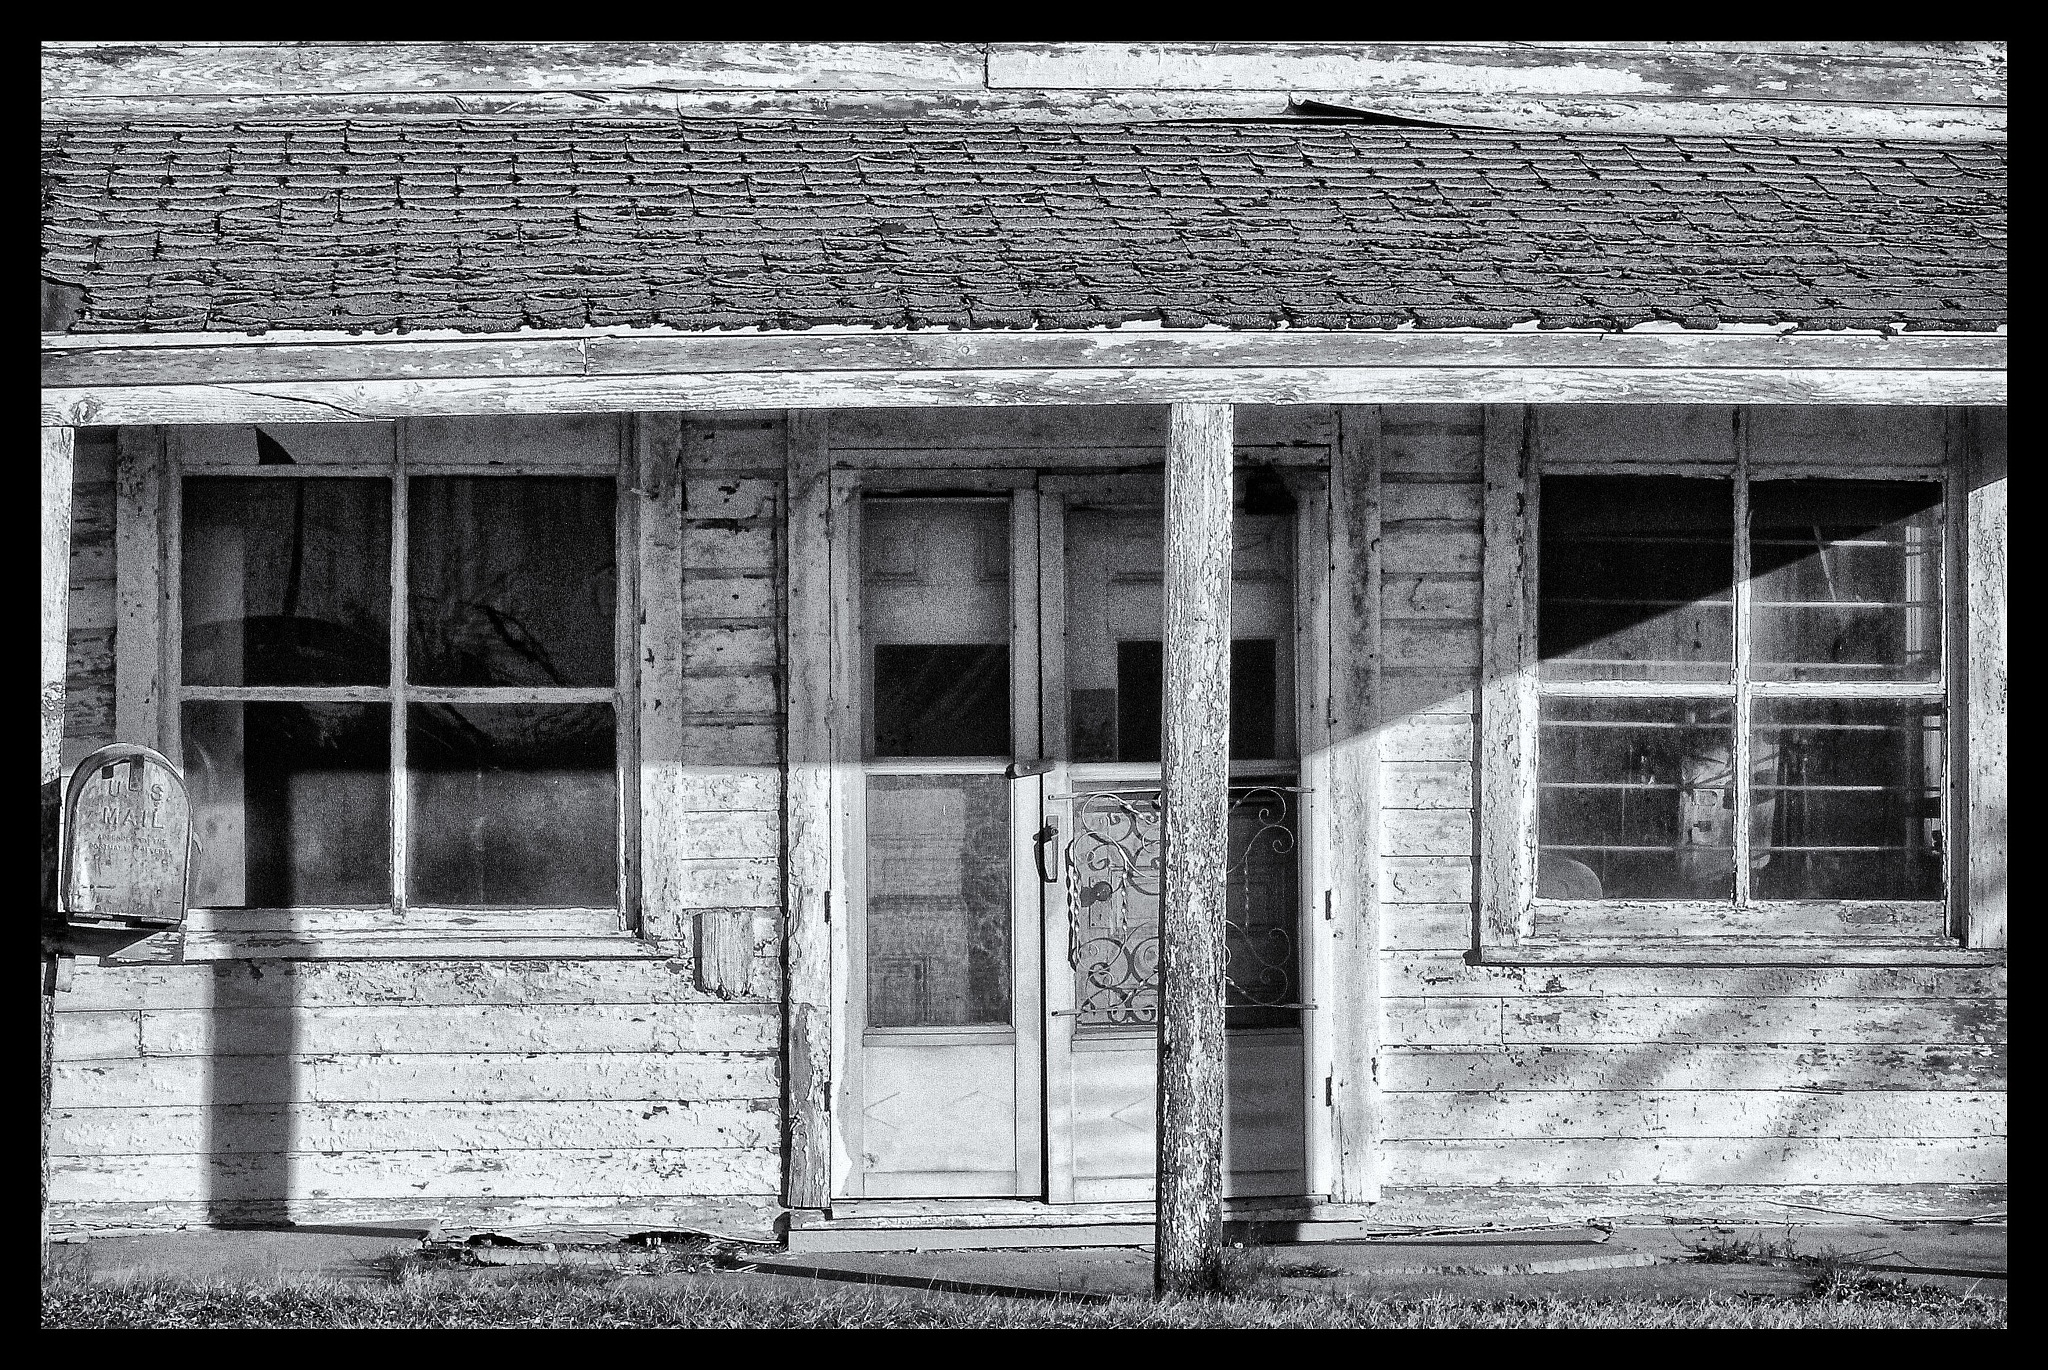 Storefront, Bonita, Kansas by dwjohnson